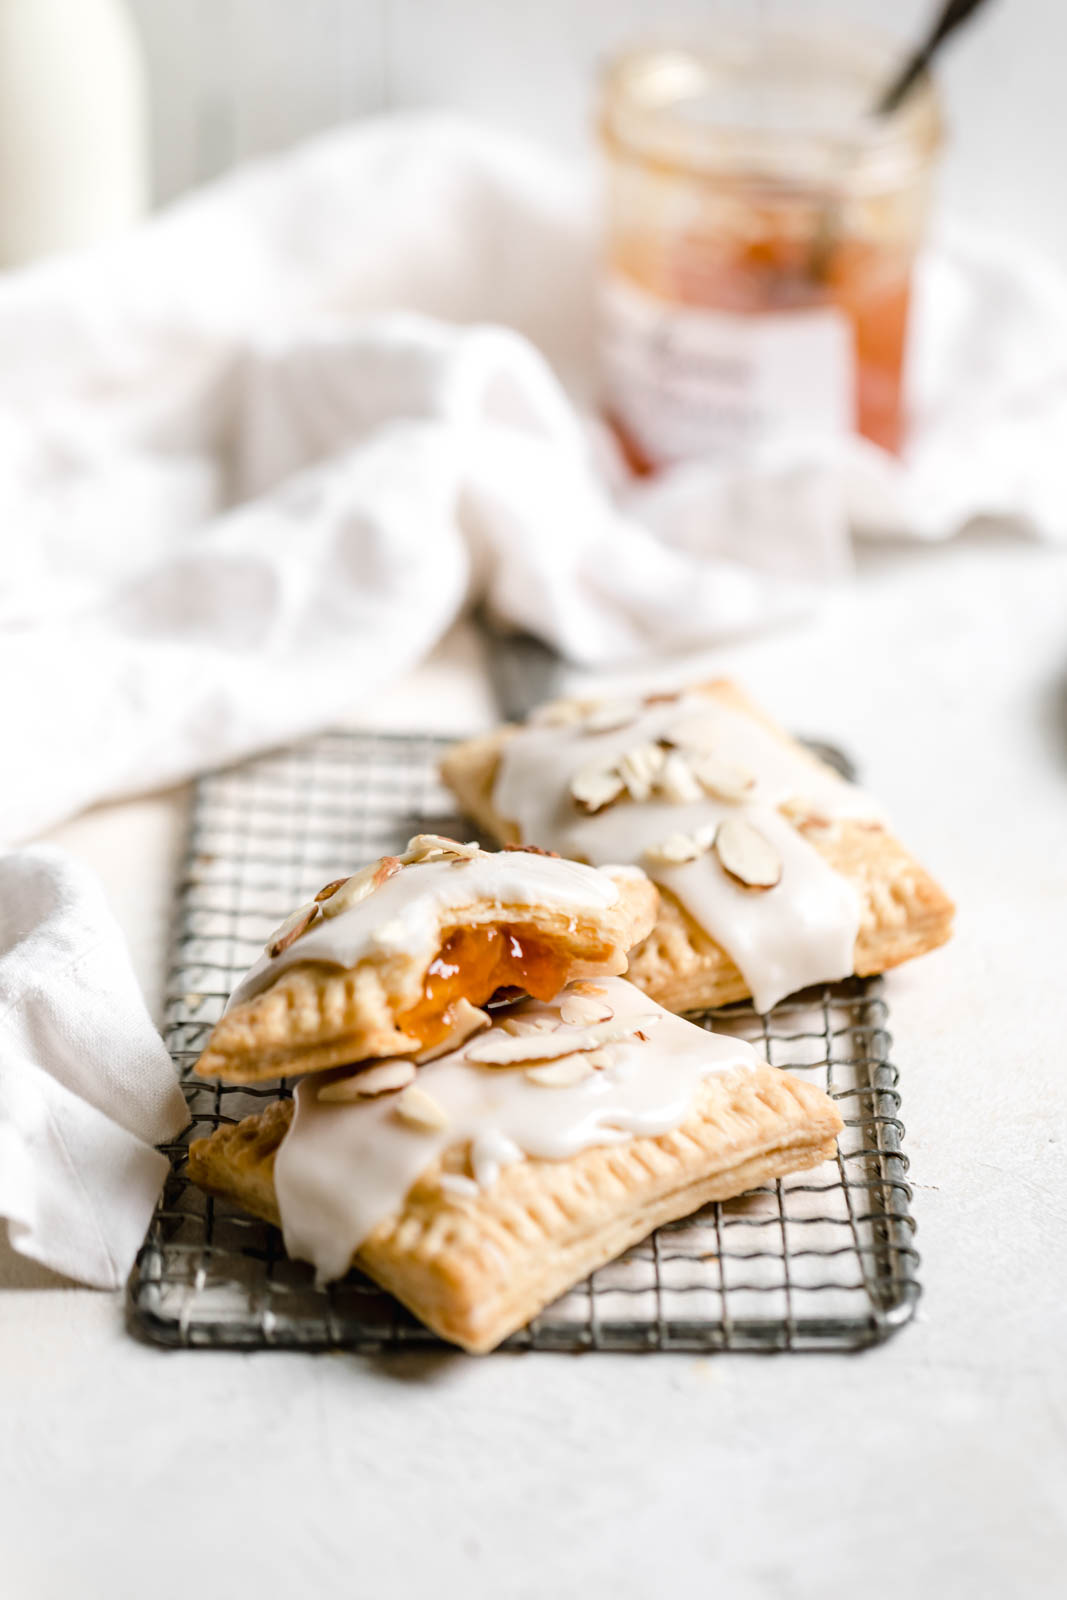 Homemade Apricot Almond Pop Tarts